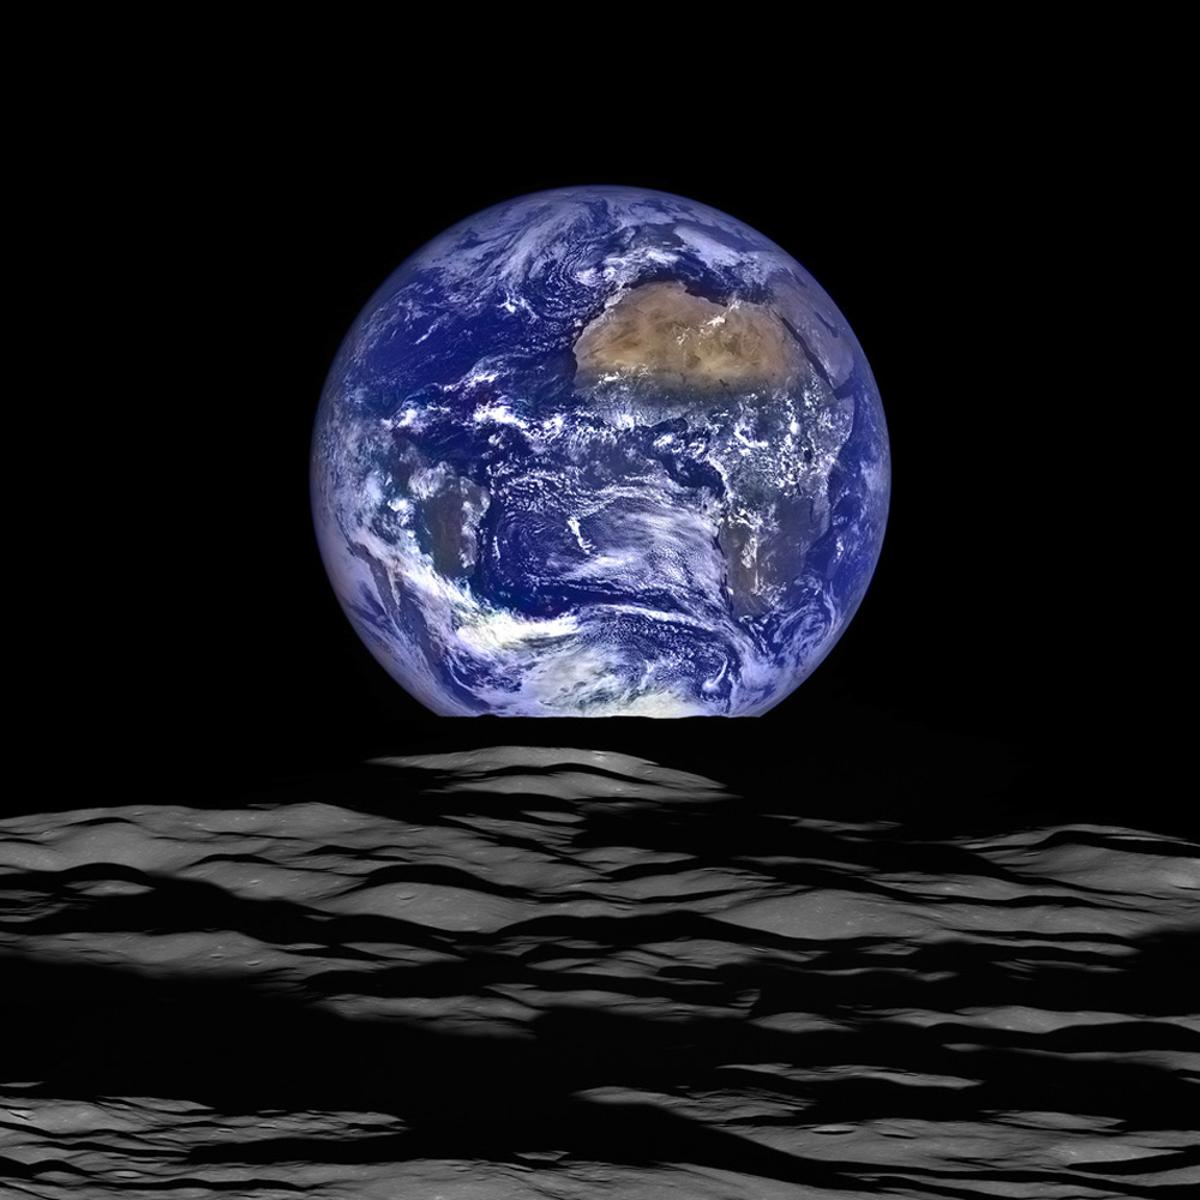 Isotope analysis indicates that Earth's water may have arrived when the Moon was formed